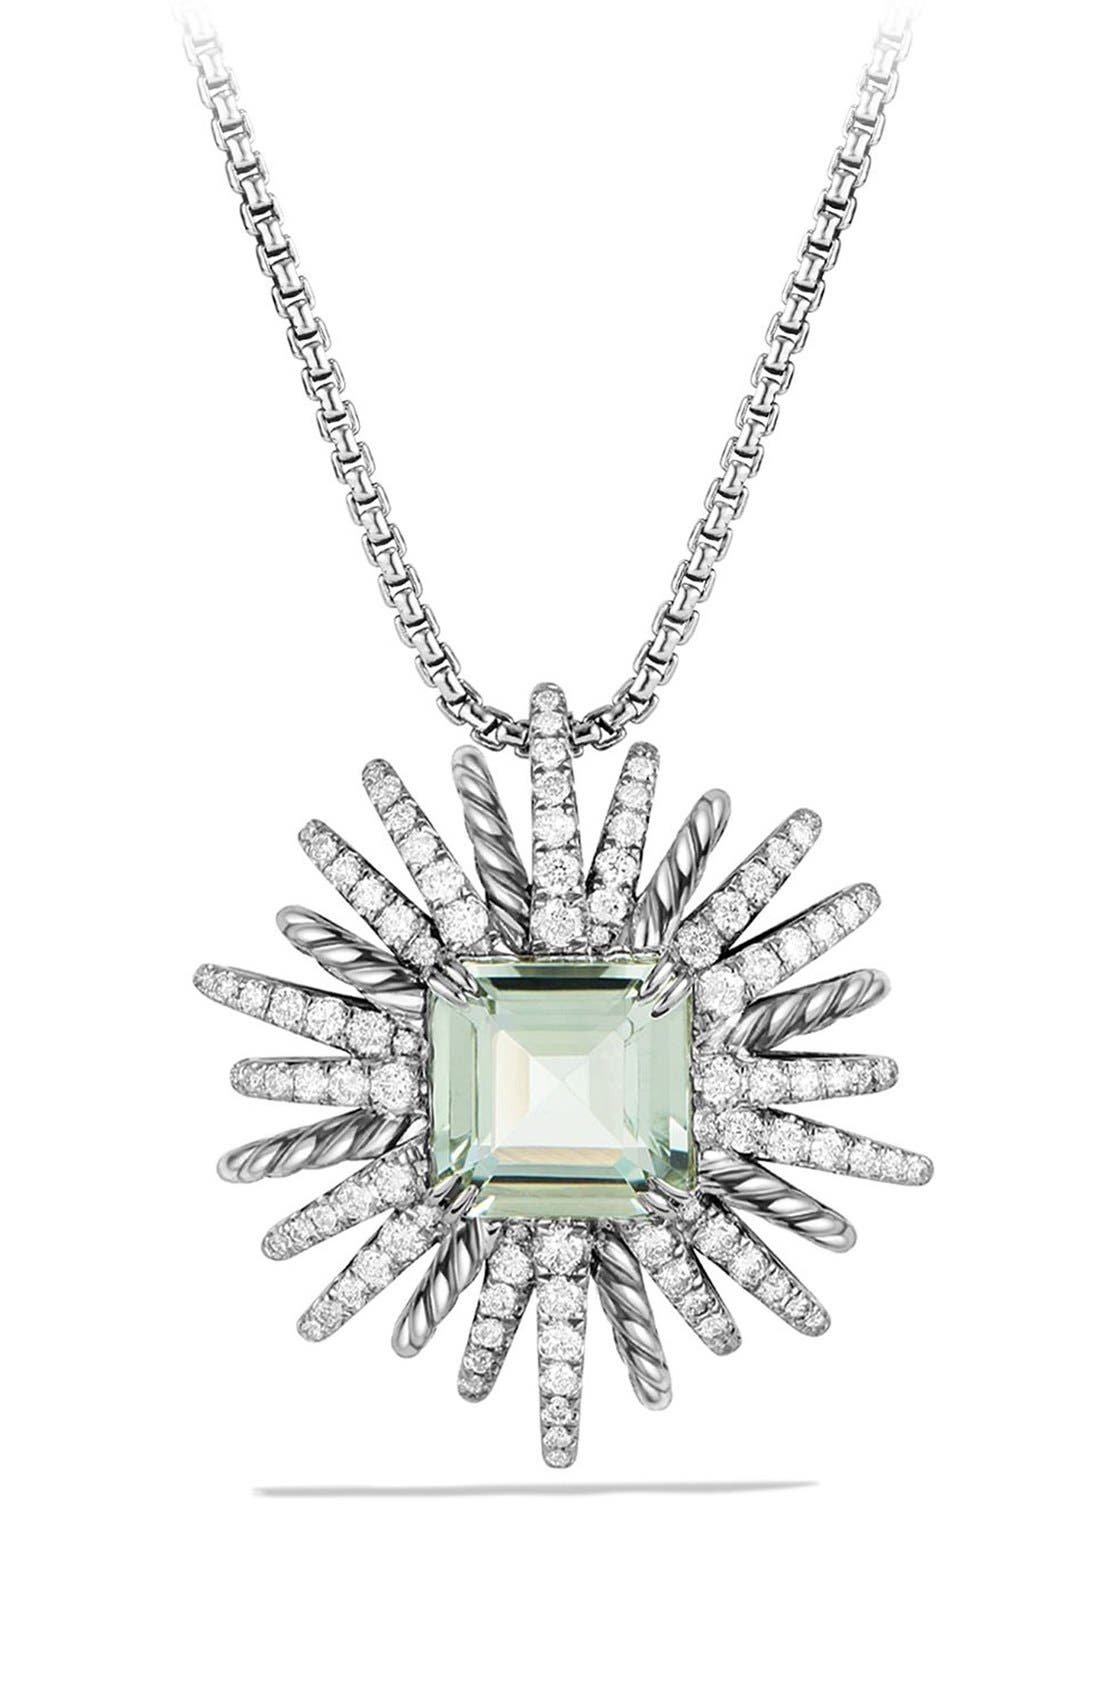 DAVID YURMAN Starburst Necklace with Diamonds in Silver